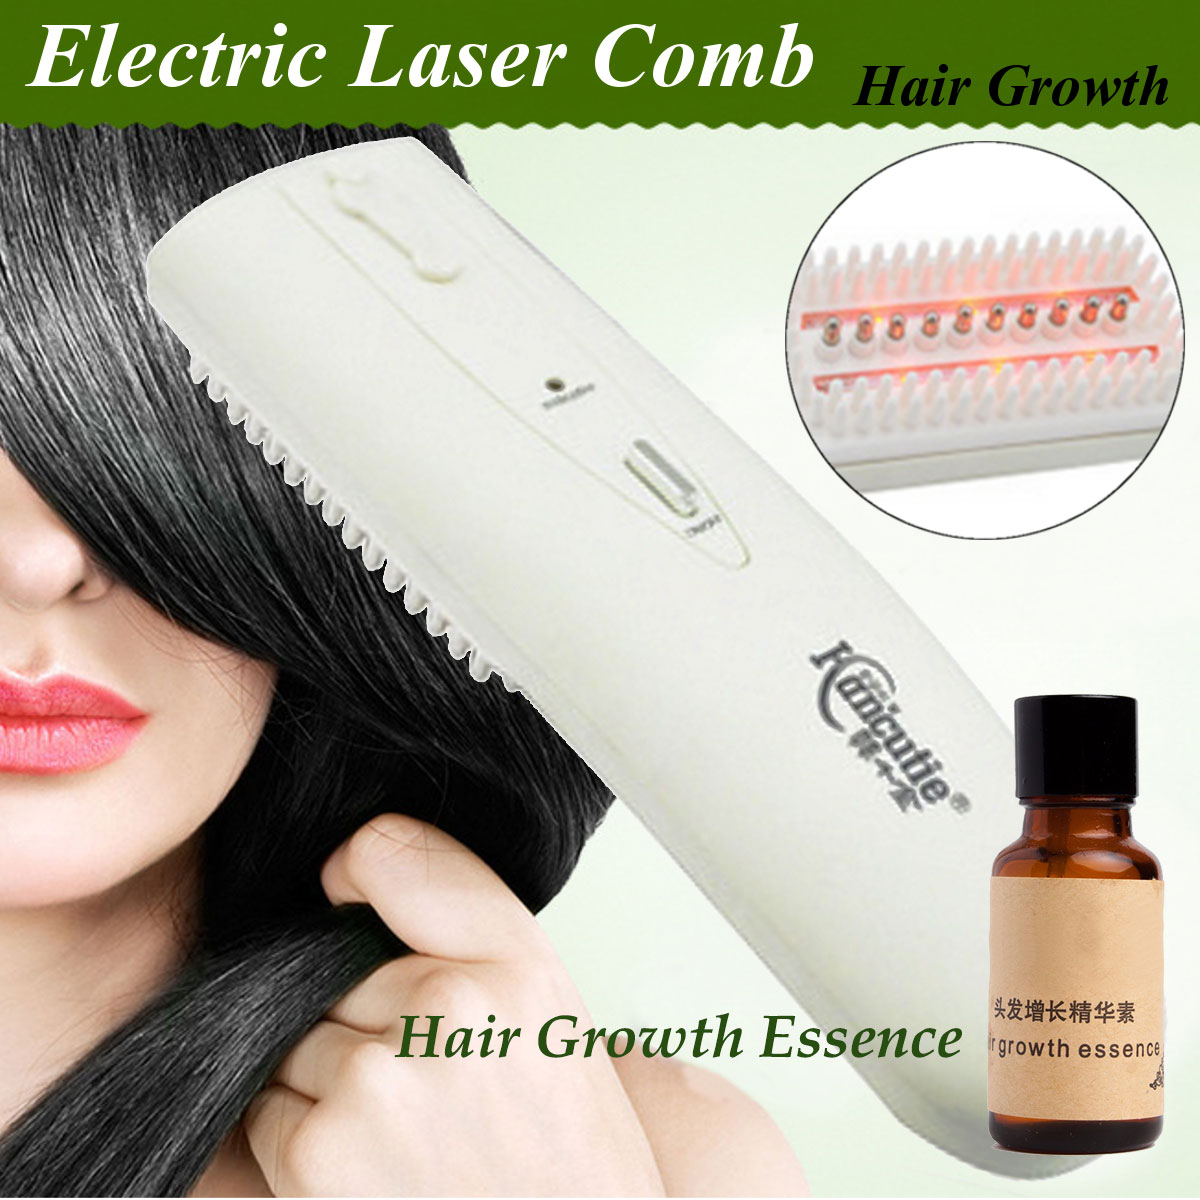 3 in 1 Laser Therapy Comb Hair Growth Hair Loss Treatment Regrowth Styling Tools